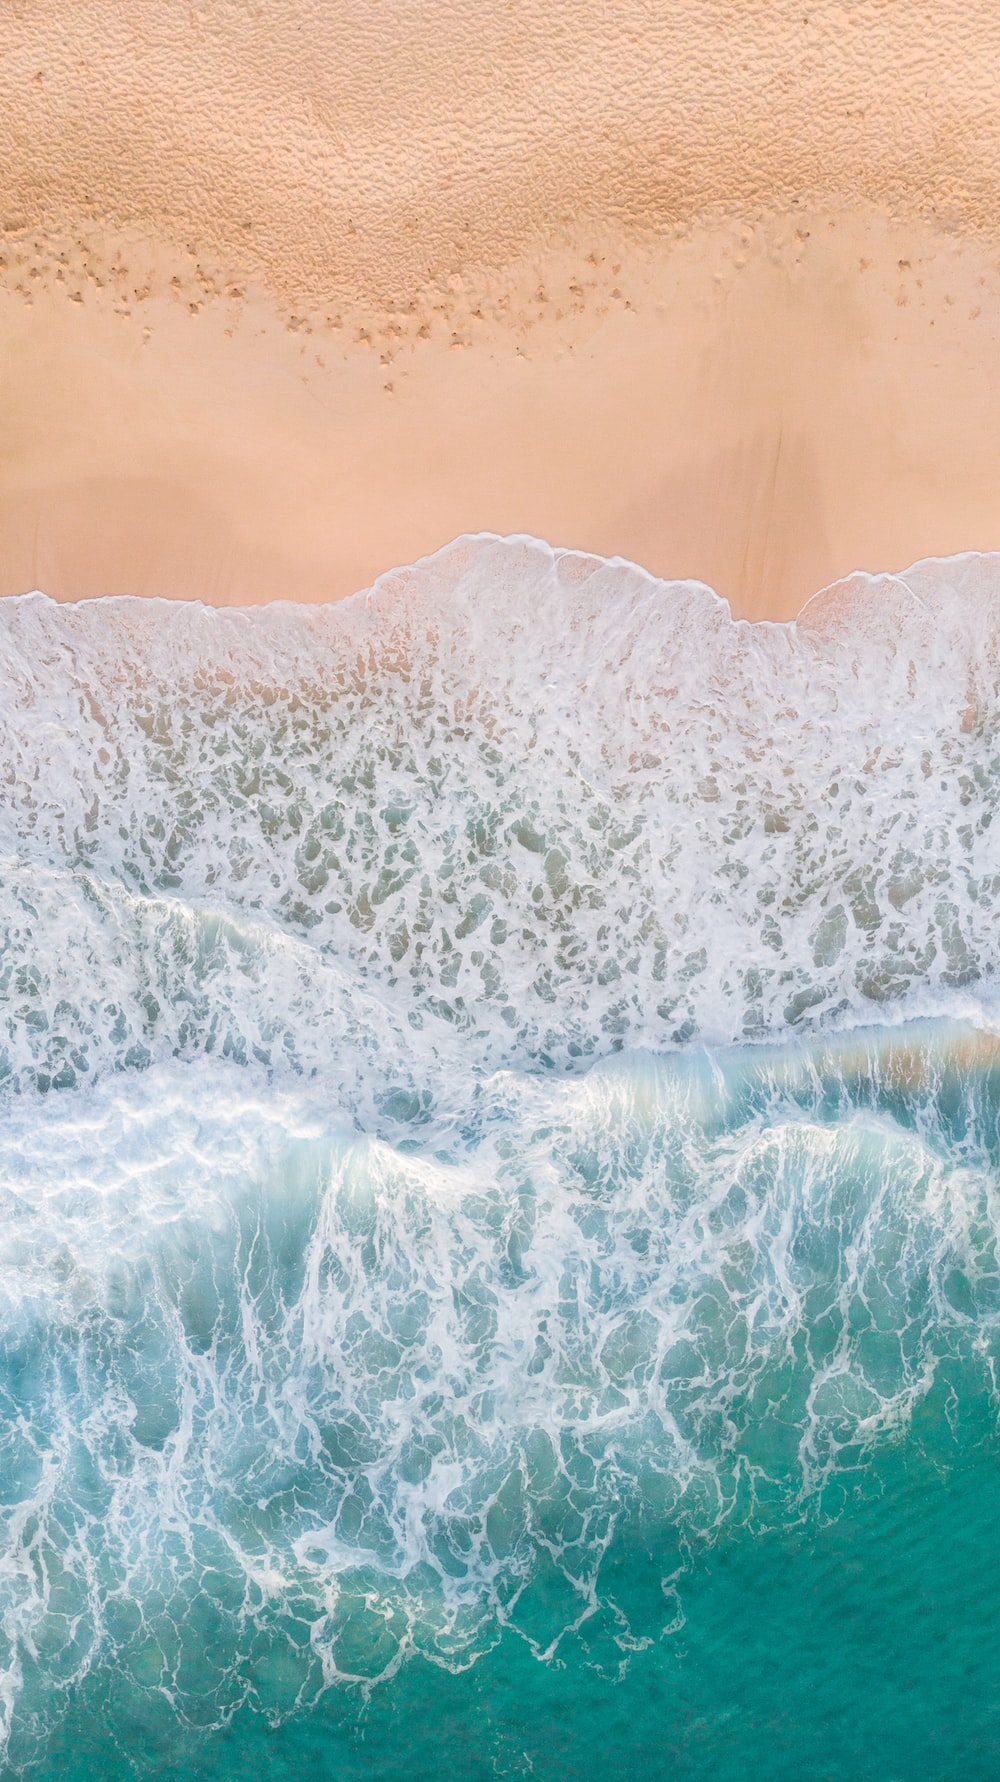 aerial photography of waves splashing on white sand beach